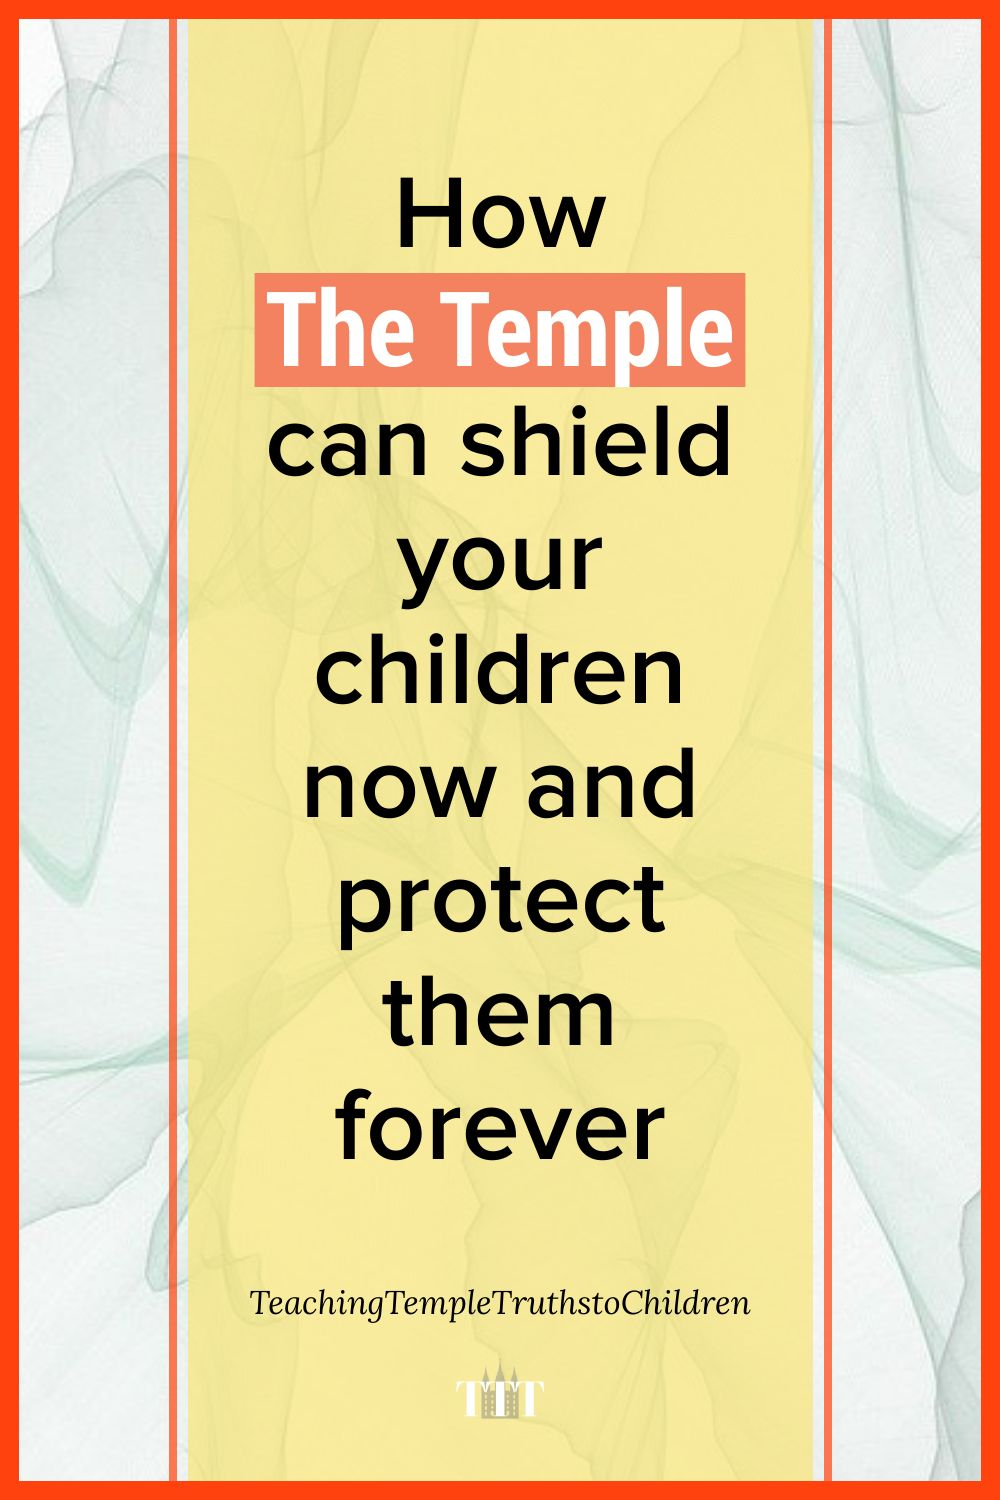 How the Temple can shield your children now and protect them forever